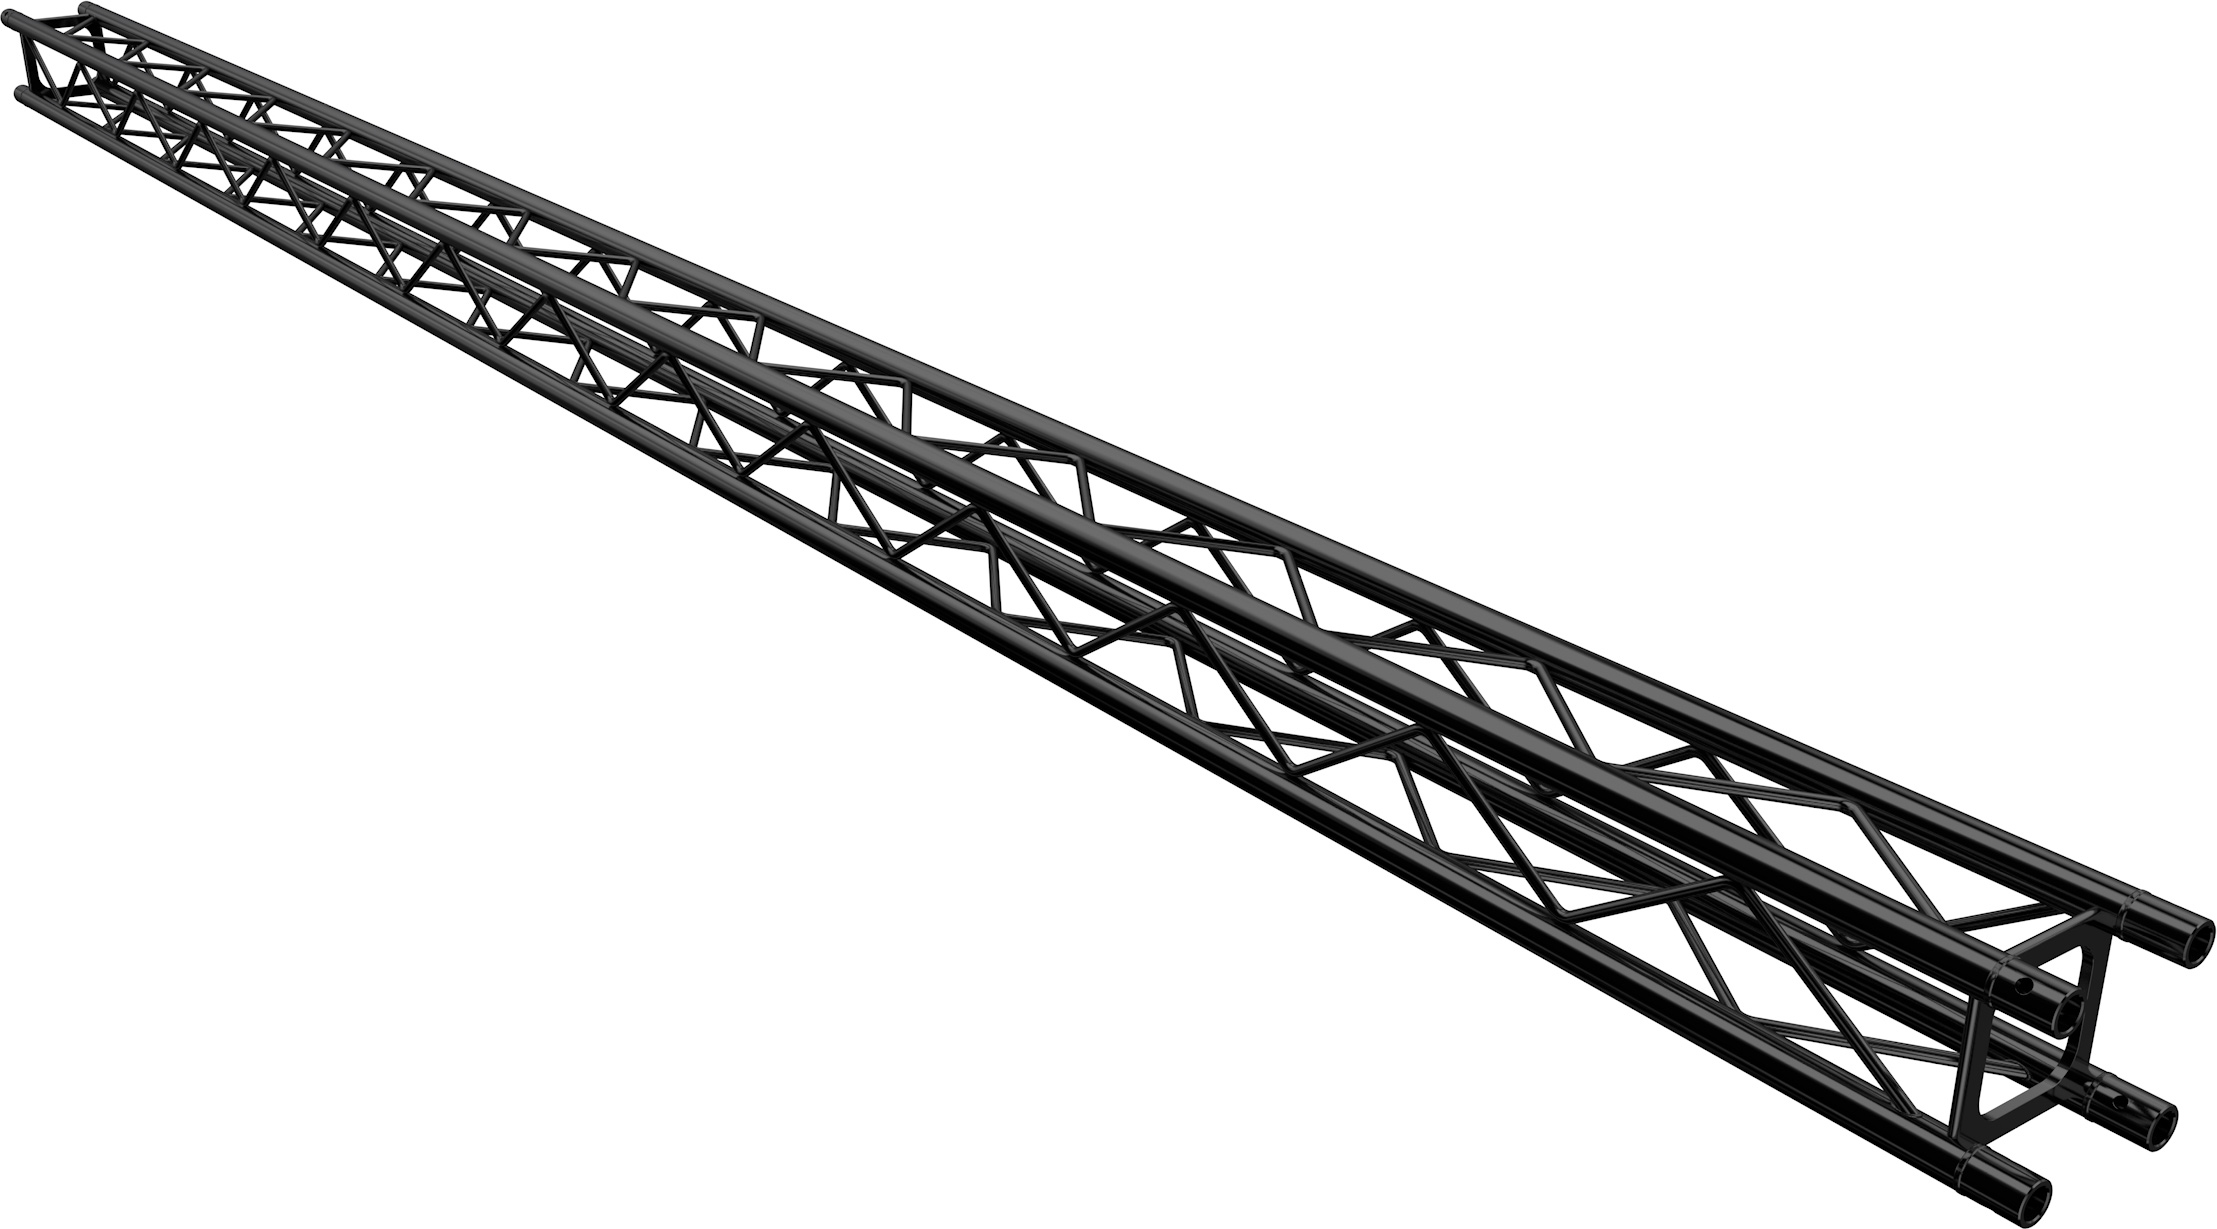 Global Truss Dekotraverse F14 250 cm Stage Black